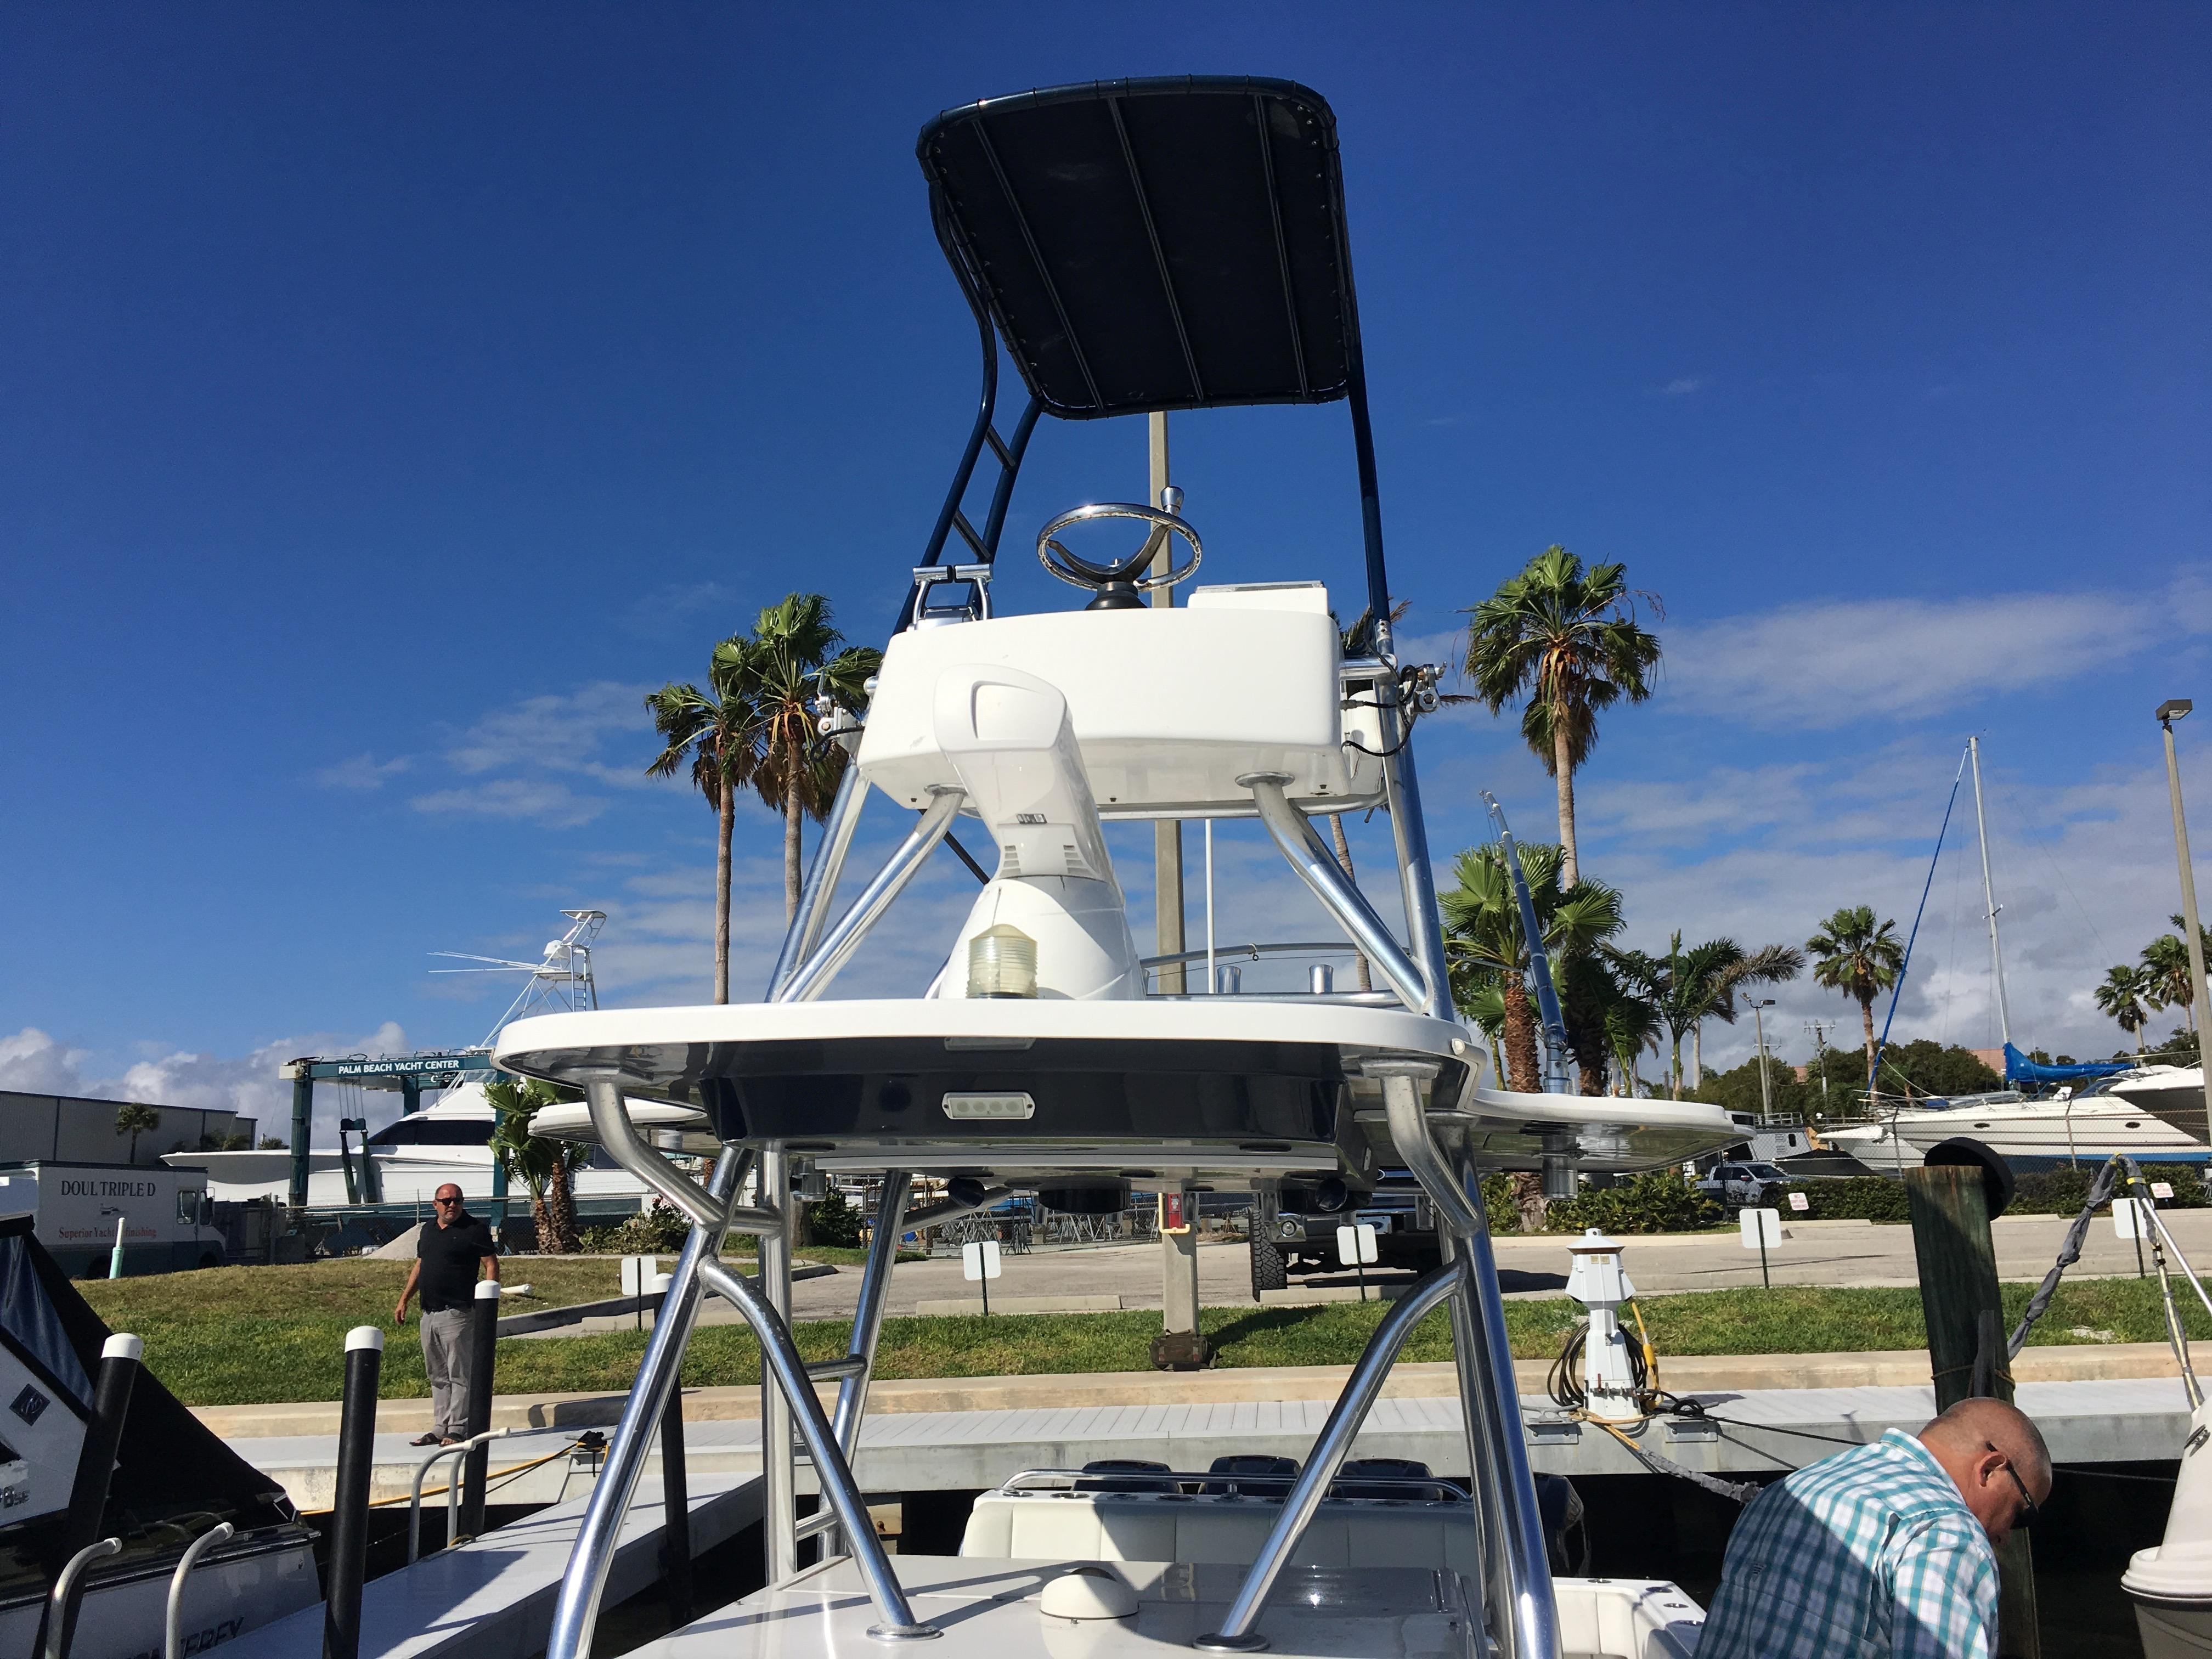 Removable Bimini on tower reduces hight above waterline to 11' 6